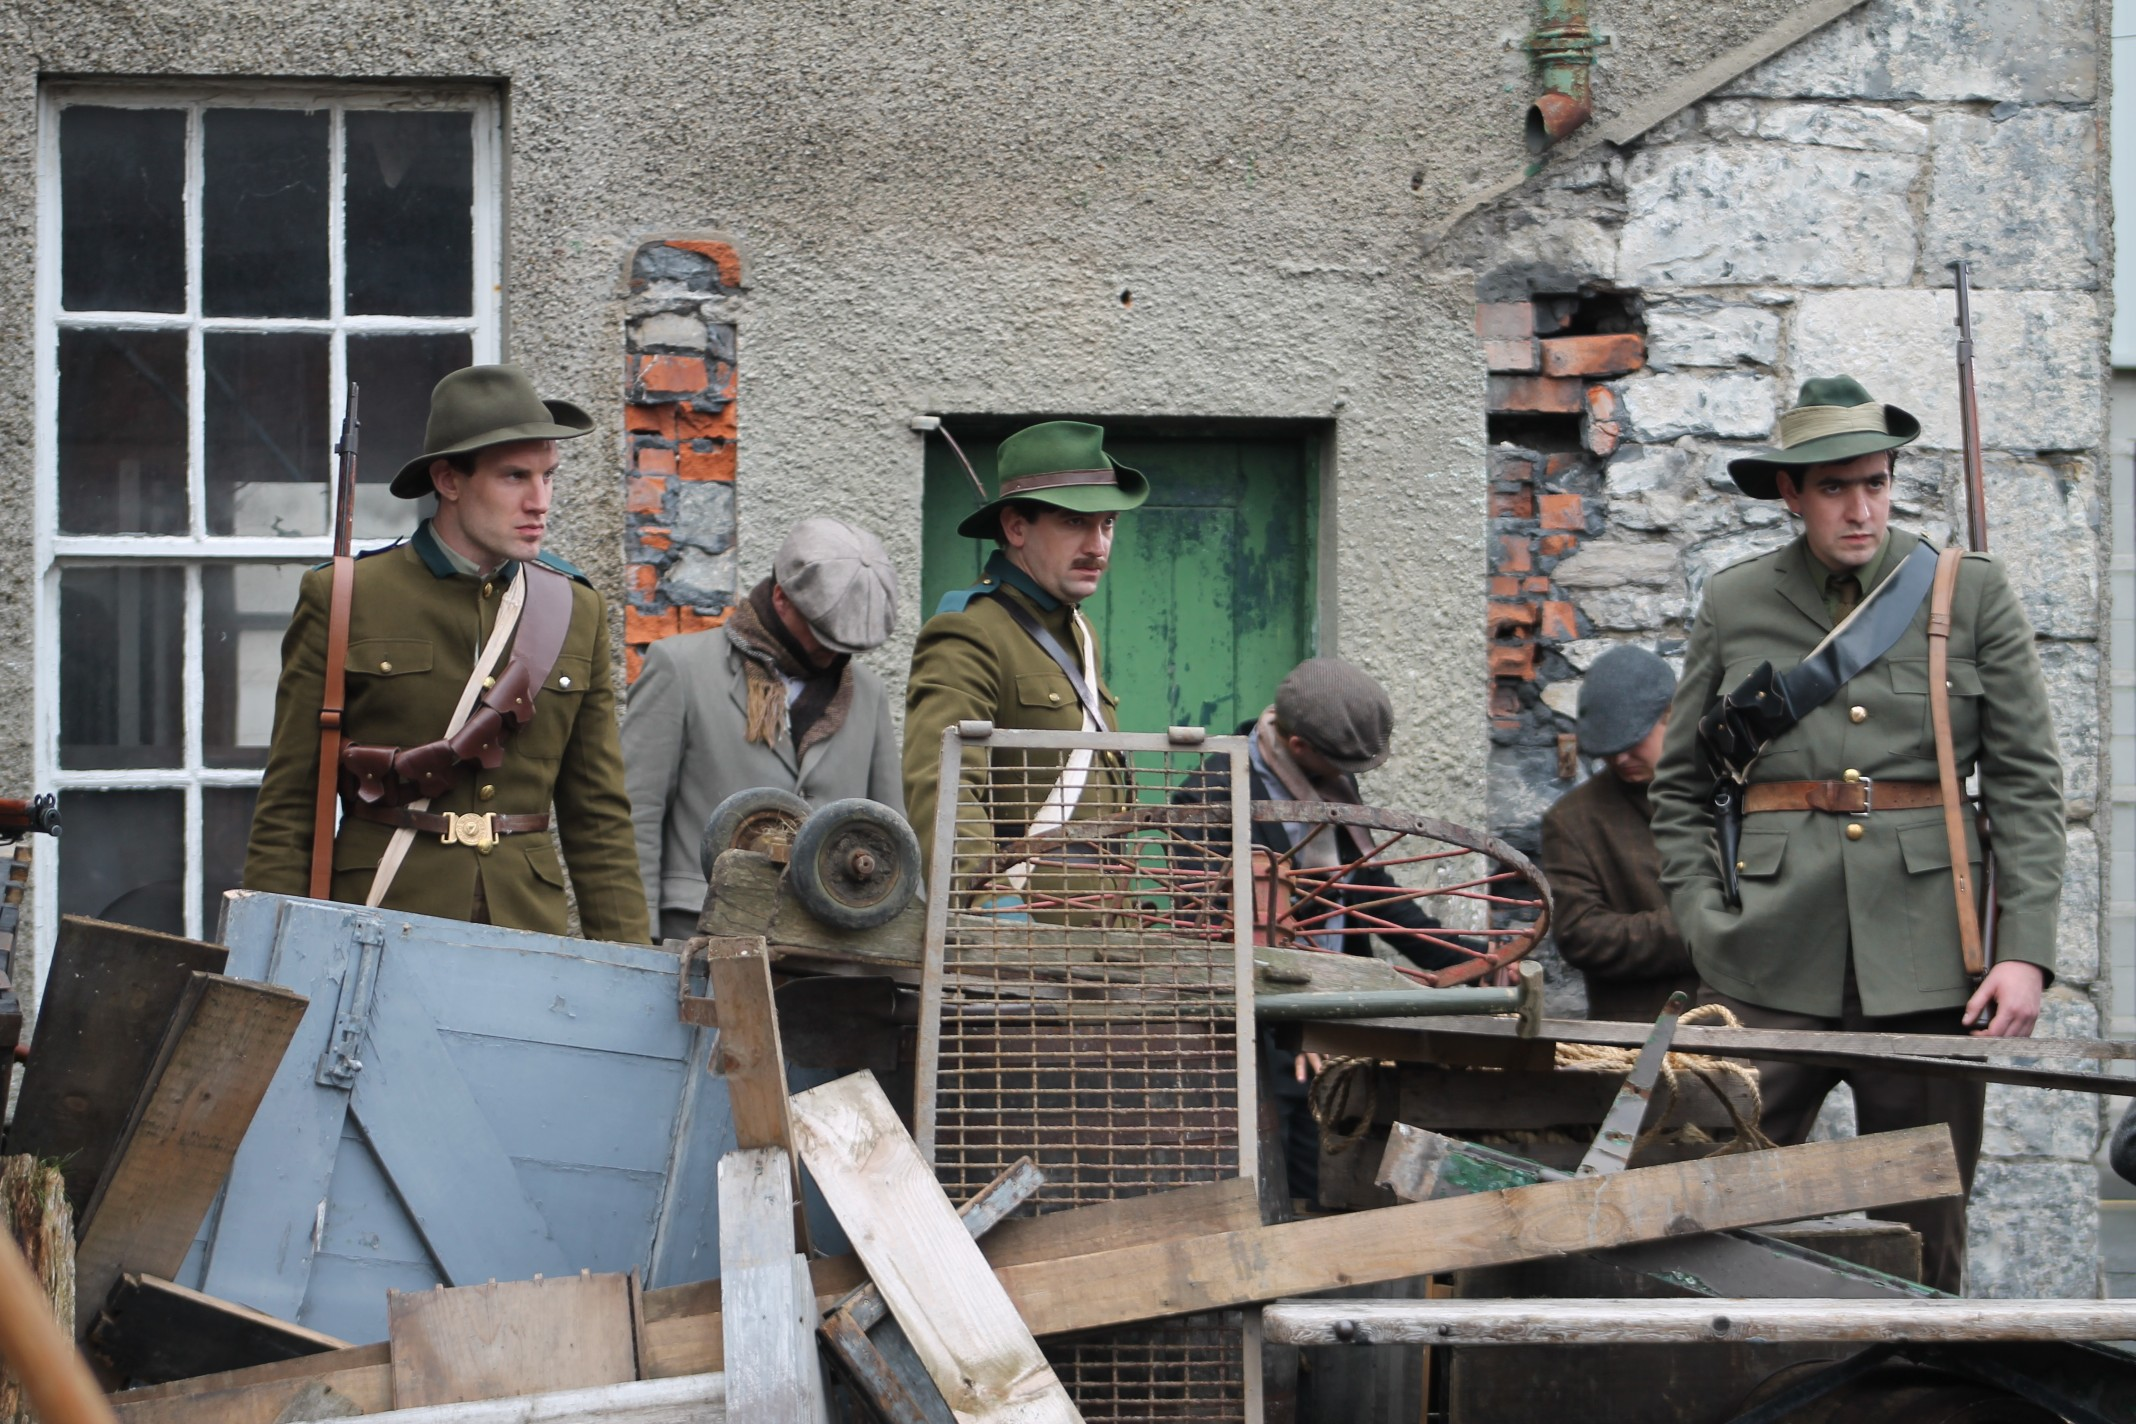 Cmdt. Ned Daly (Owen McDonnell) and the Shouldice brothers (Rick Burn and Colin D. Farrell) man a barricade at North King St.